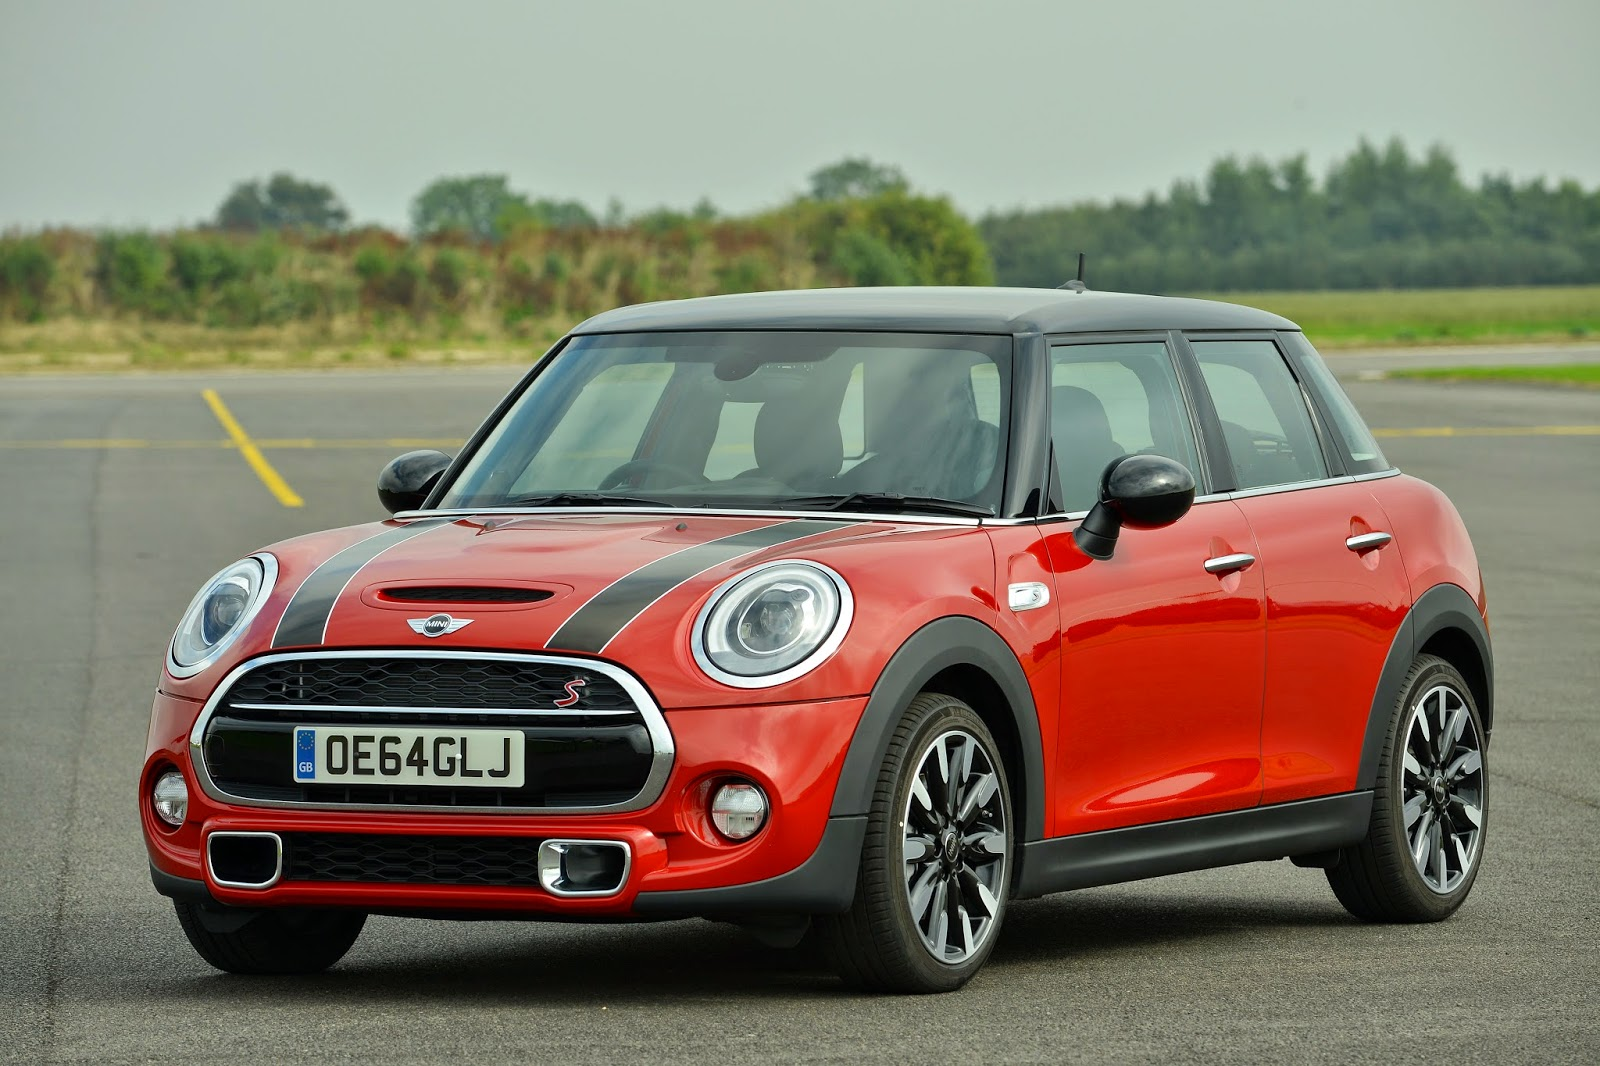 Front 3/4 view of 2015 Mini Cooper S Hardtop 4 door